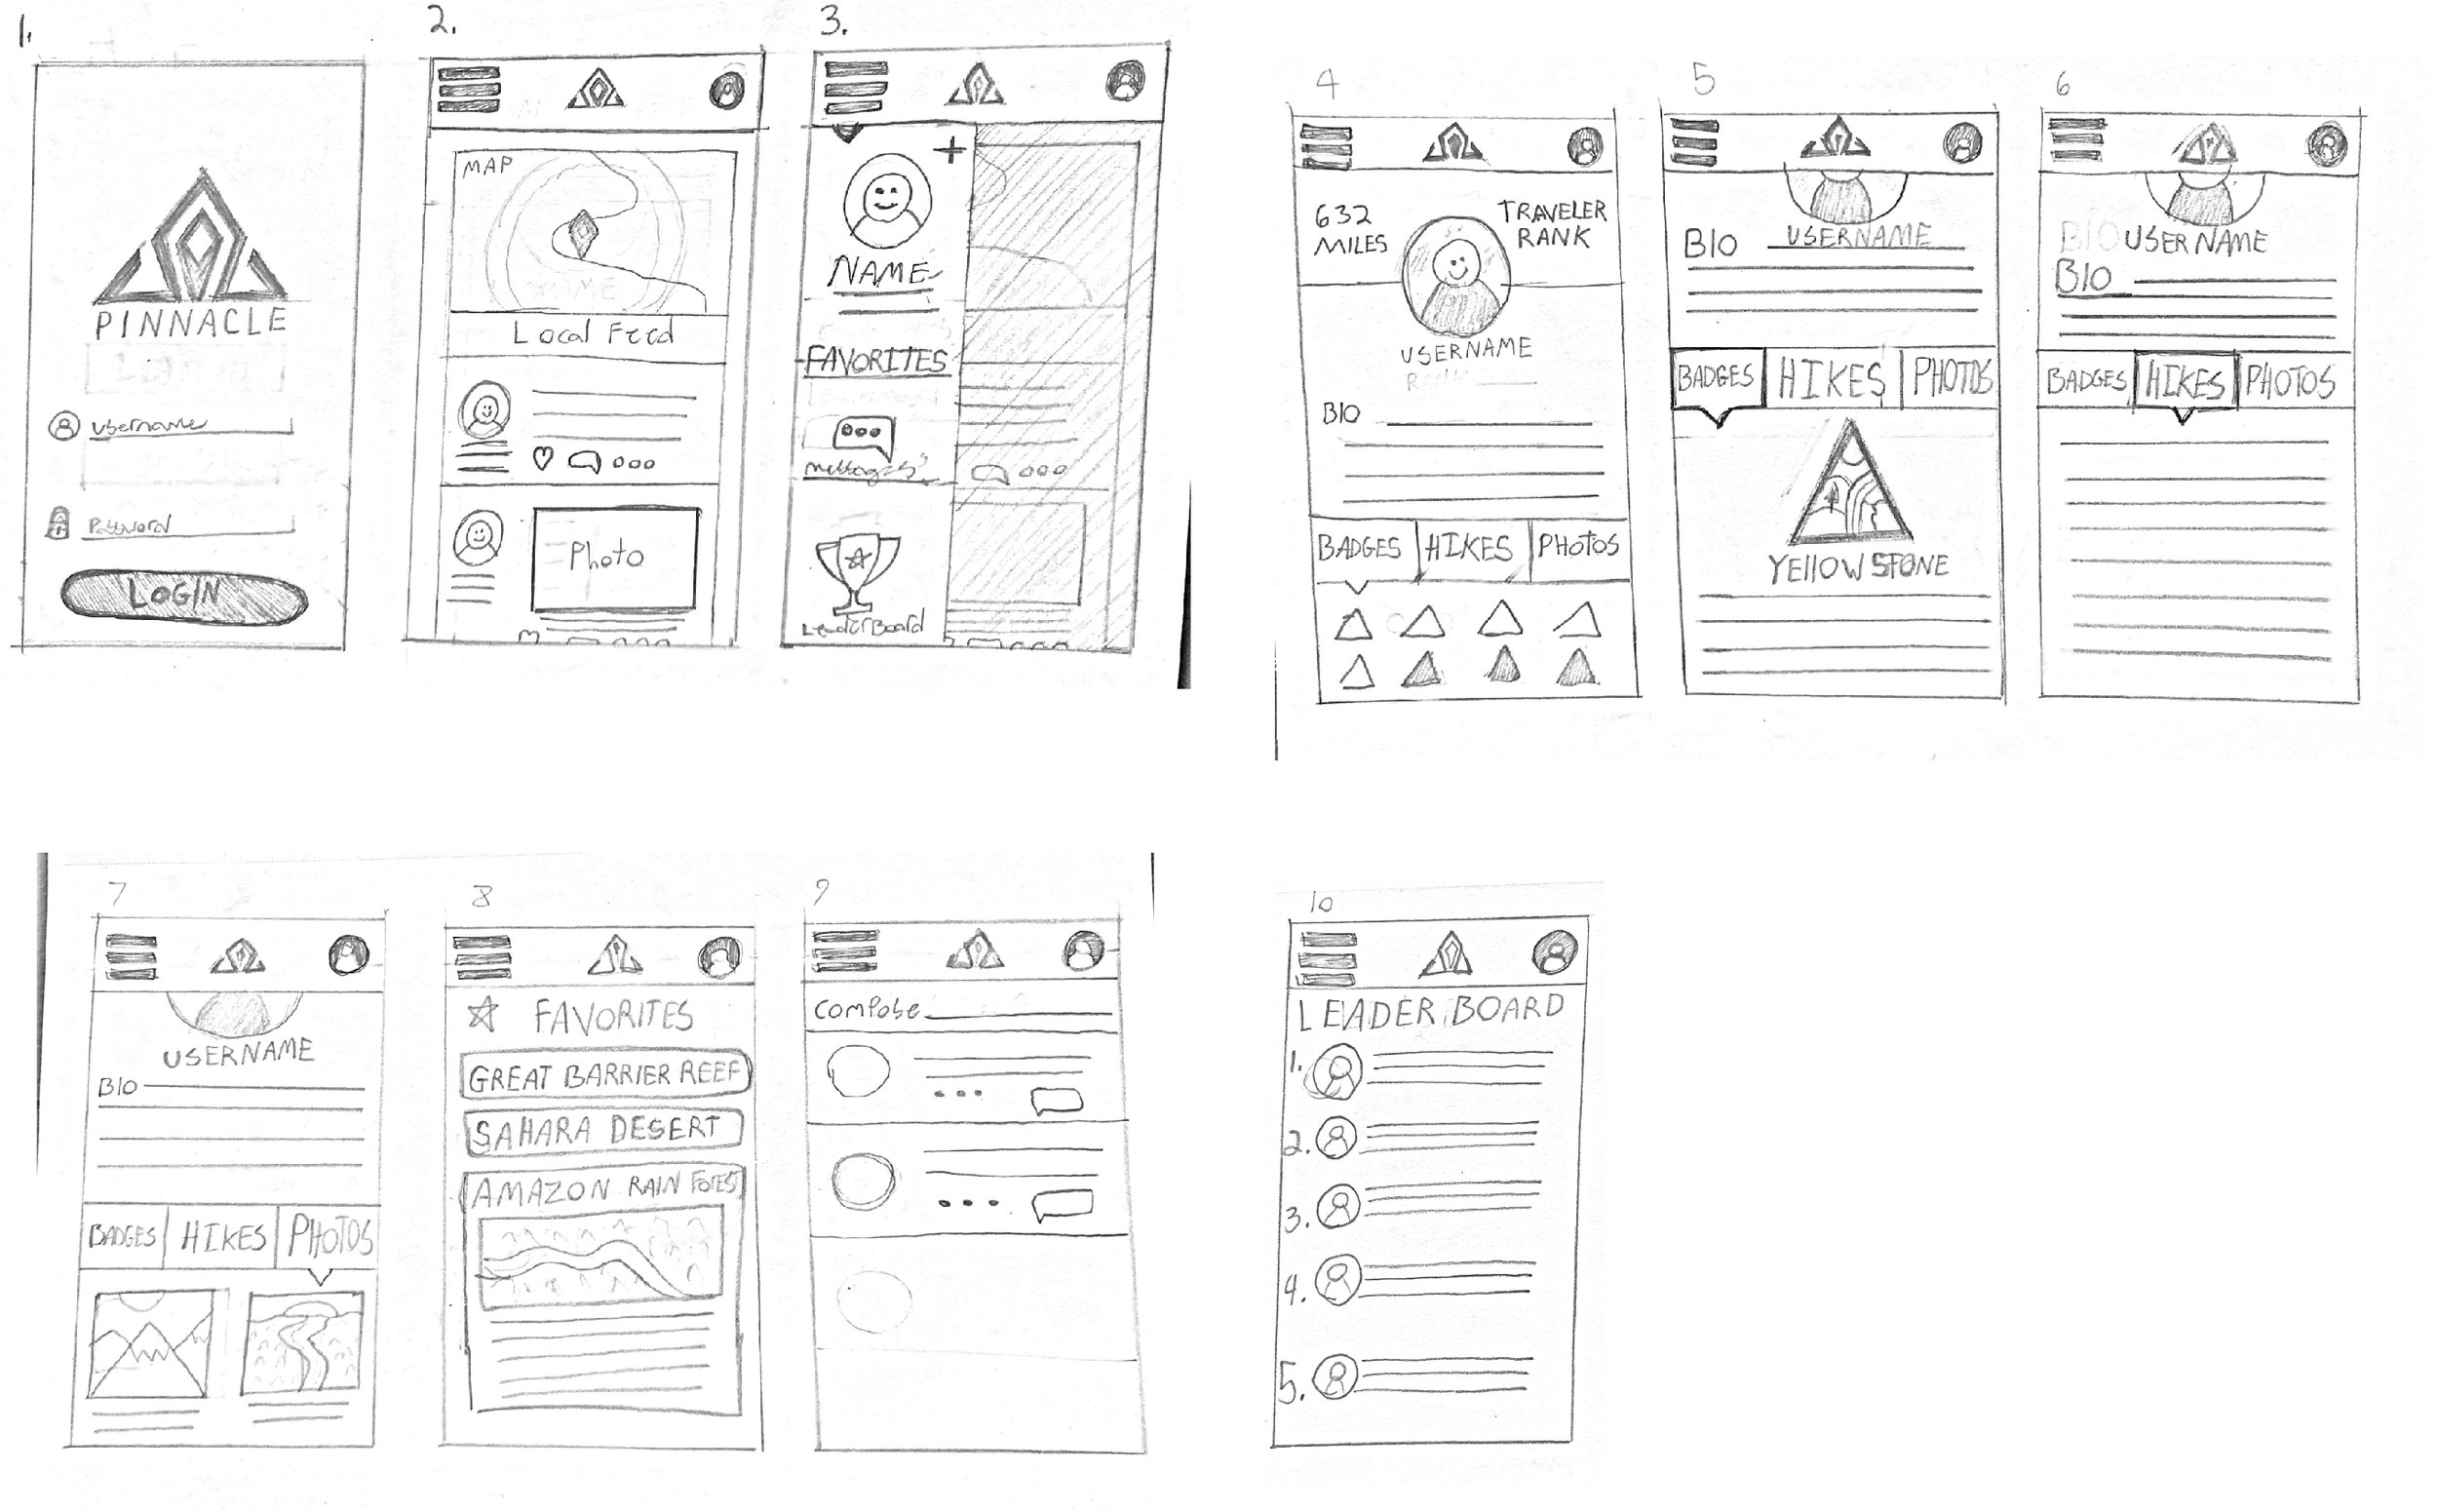 - Once the concept was thought out the process of design was started with very rough sketches. This was to get the initial idea of where things should go before we even jump into wireframes.